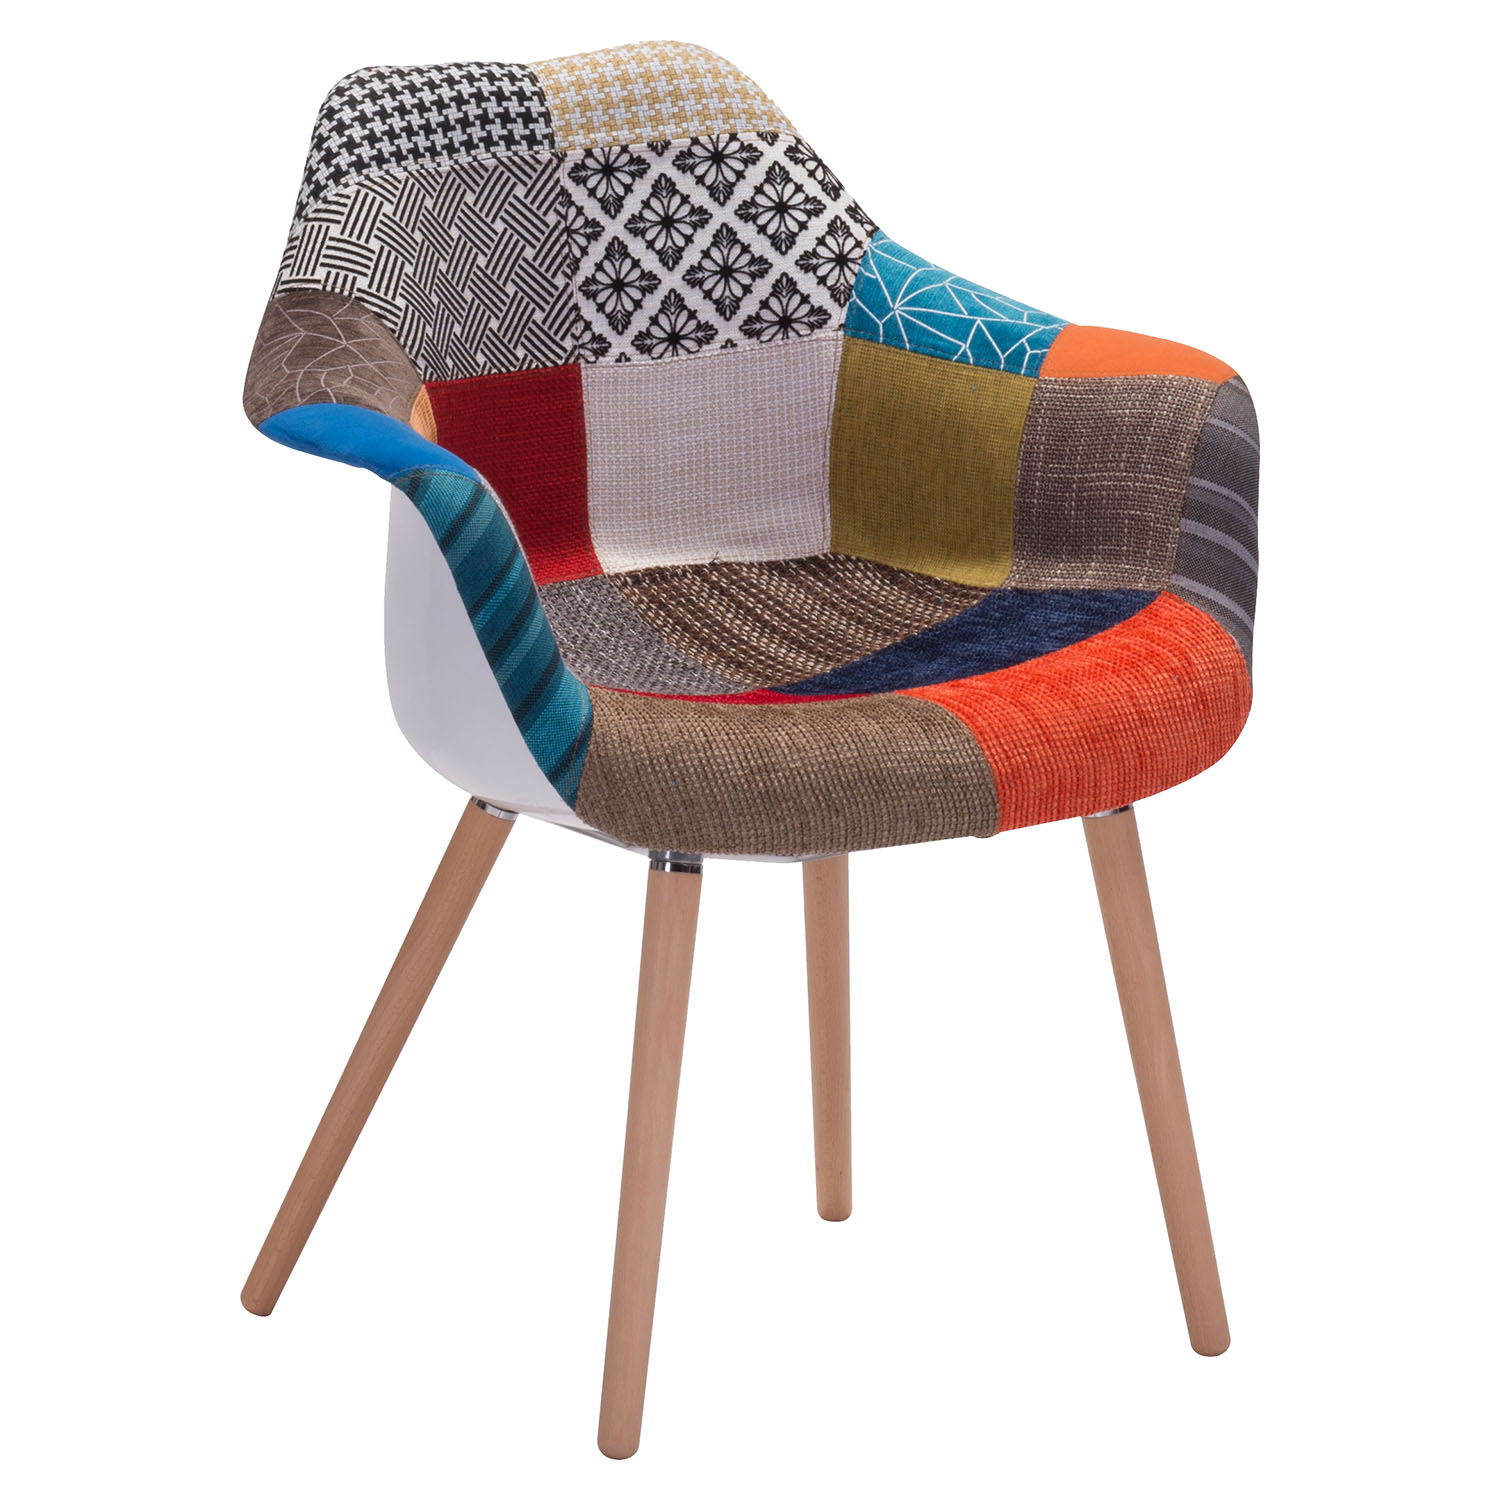 Safdie Occasional Chair - Patchwork Multicolor